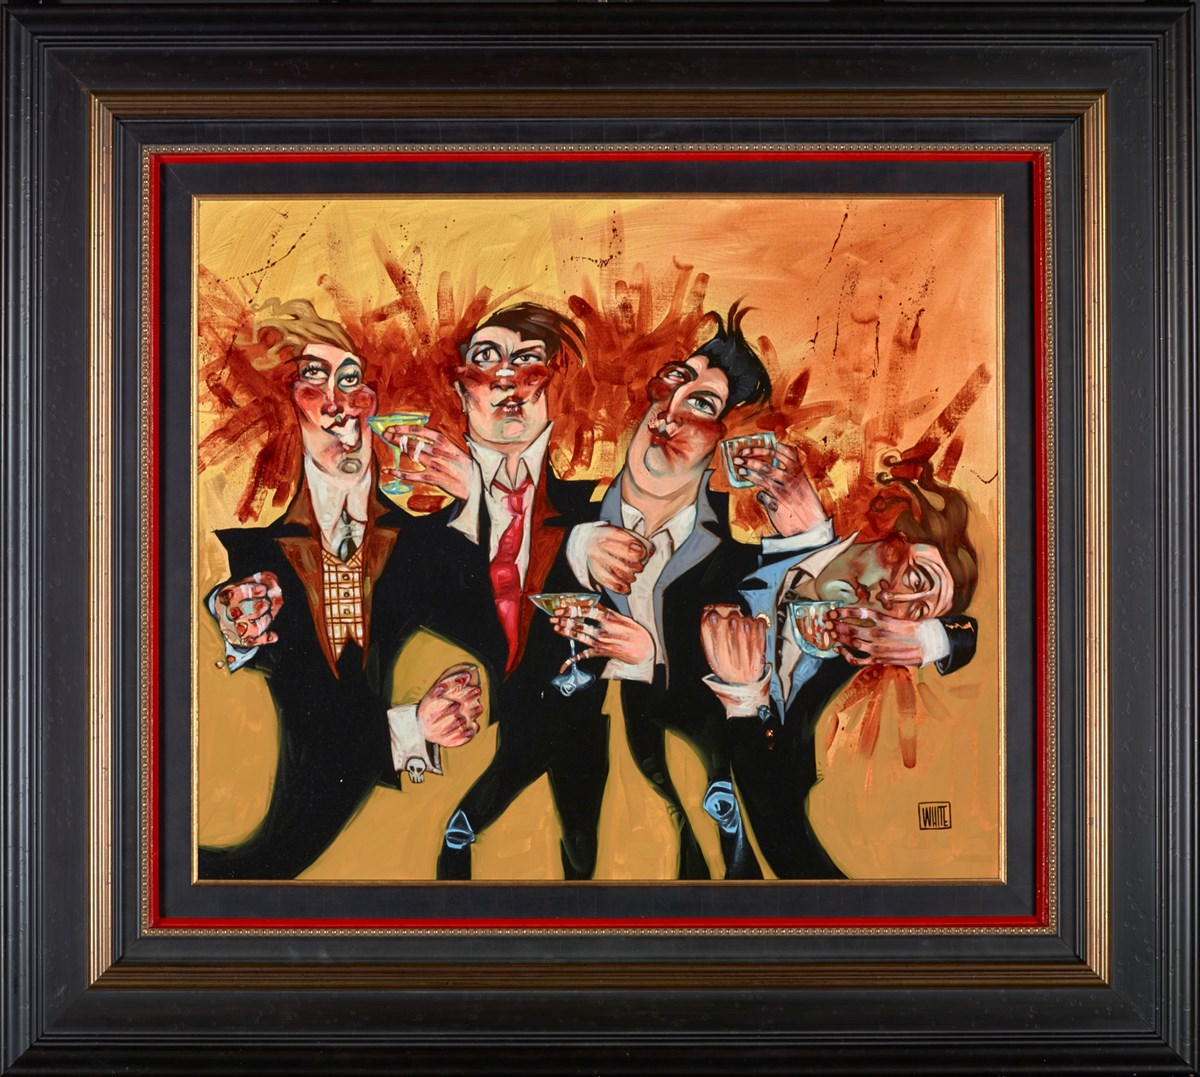 Drinking Punches by todd white -  sized 27x23 inches. Available from Whitewall Galleries